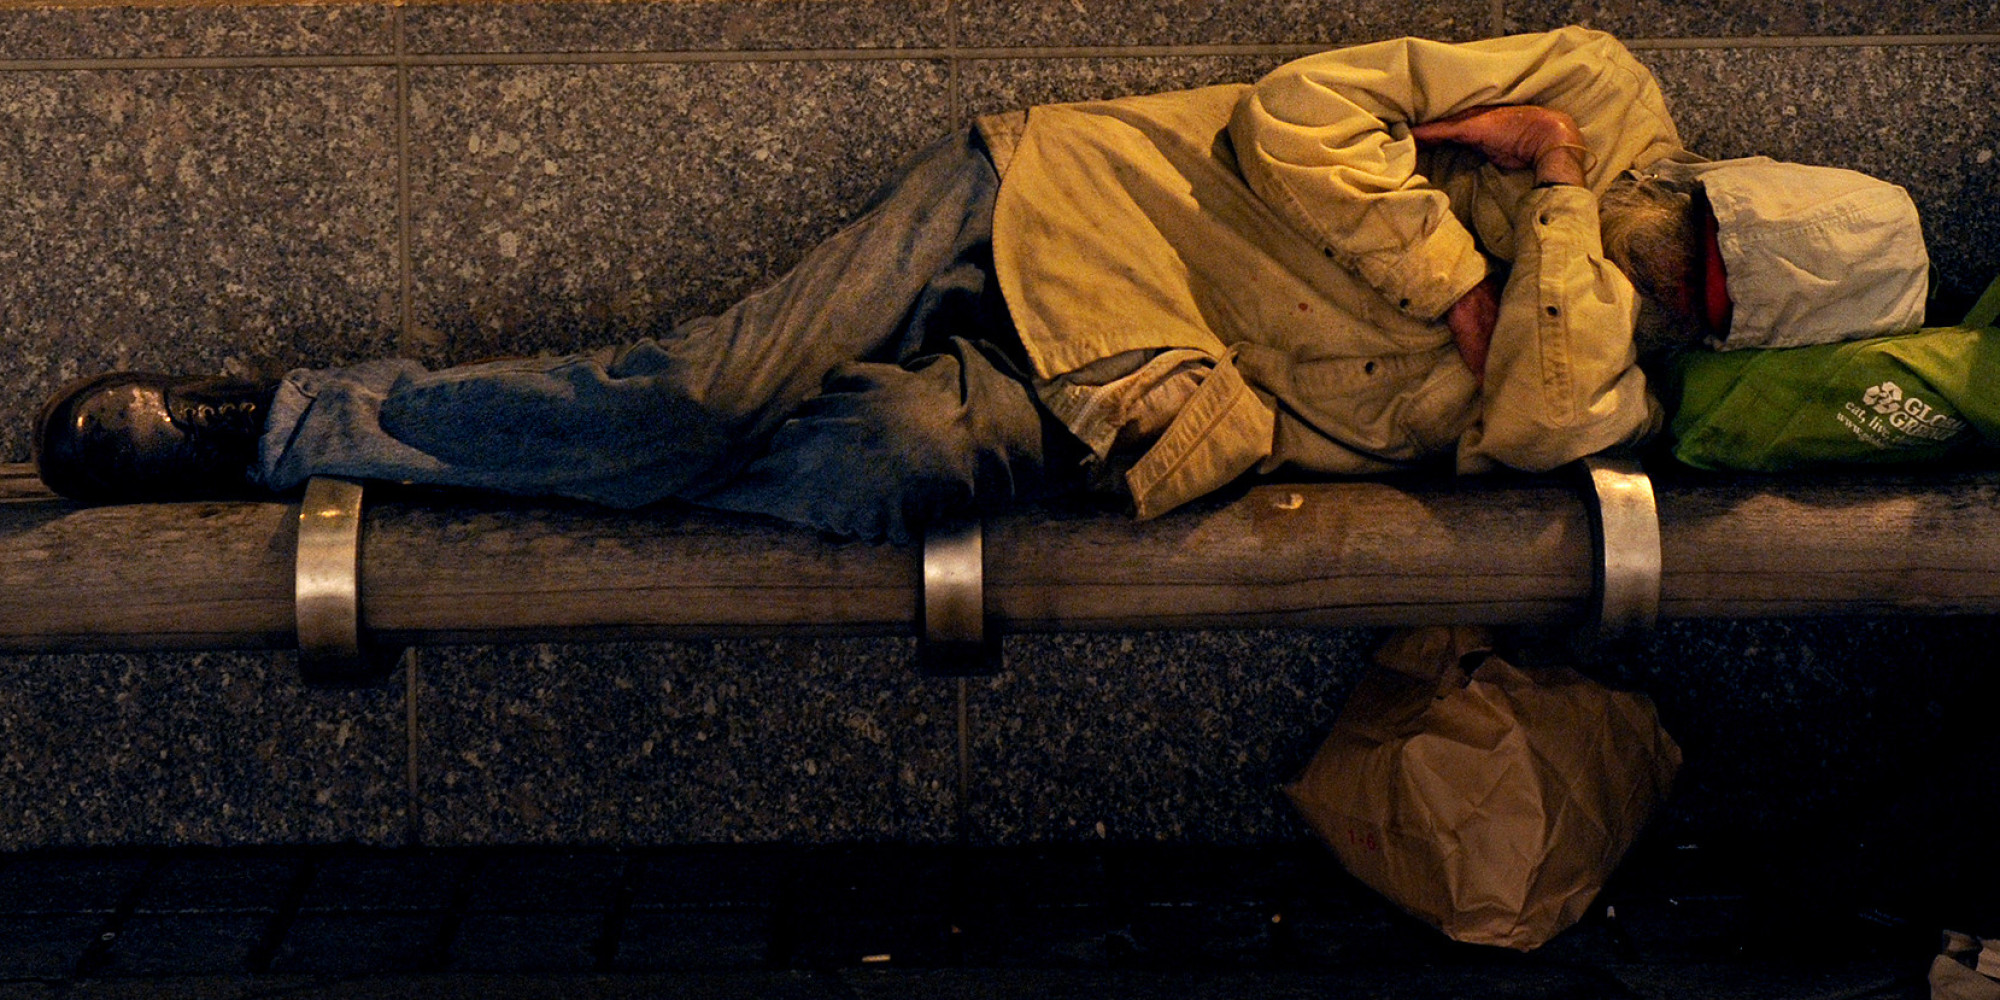 John McDermott is a Formerly Homeless Man Who Now Has Housing